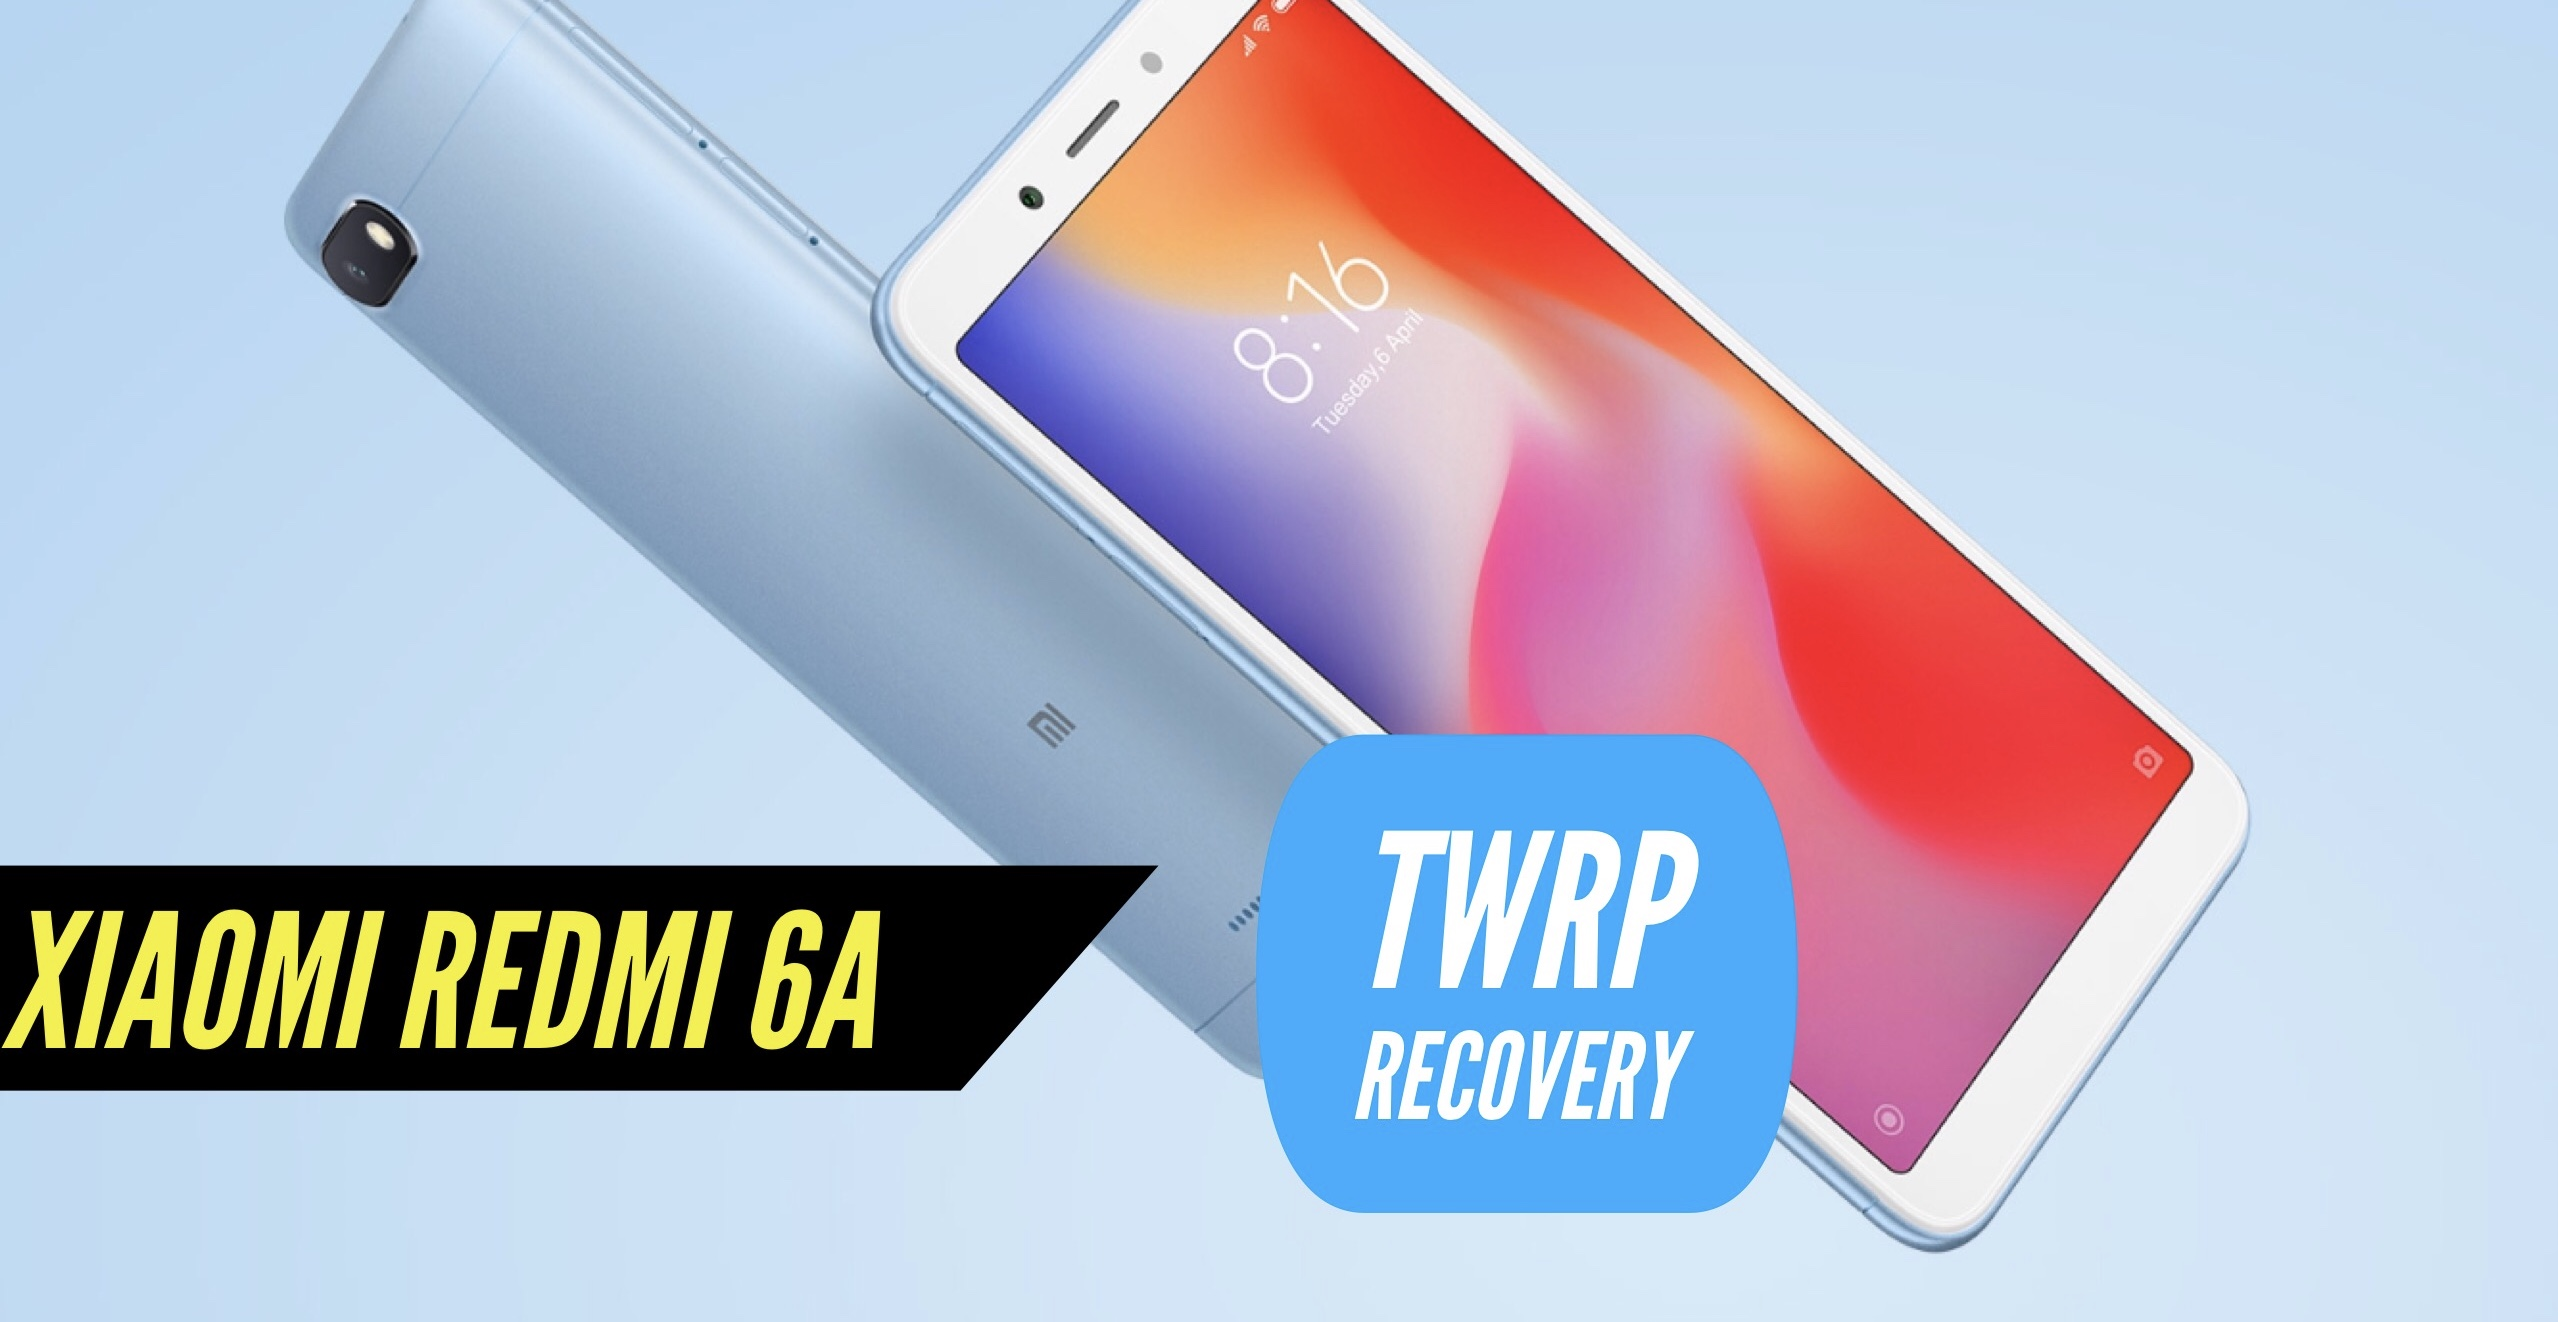 Download & Install TWRP Recovery on Xiaomi Redmi 6A - Official!